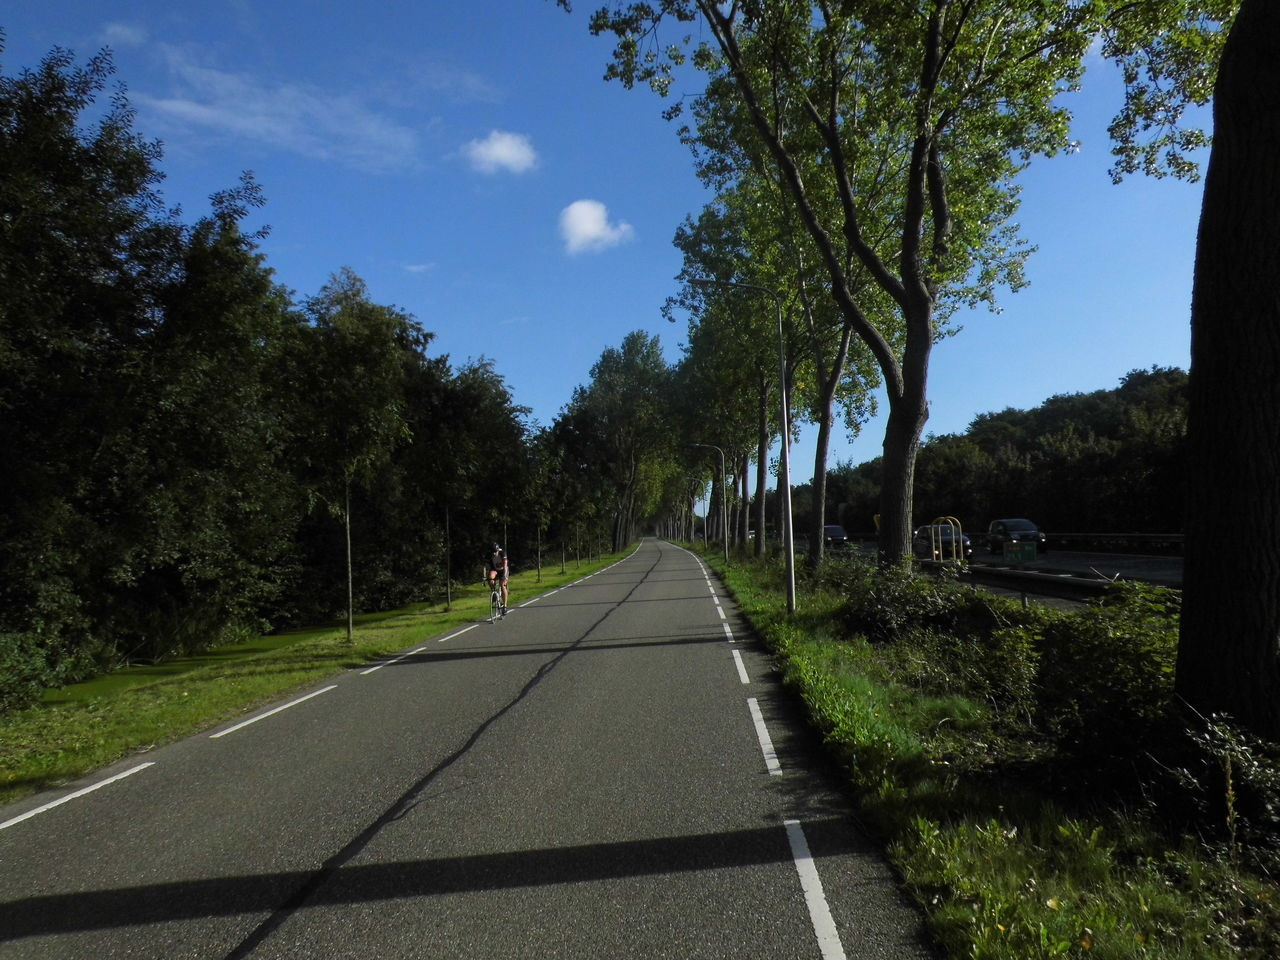 Man Cycling On Road Amidst Trees Against Sky